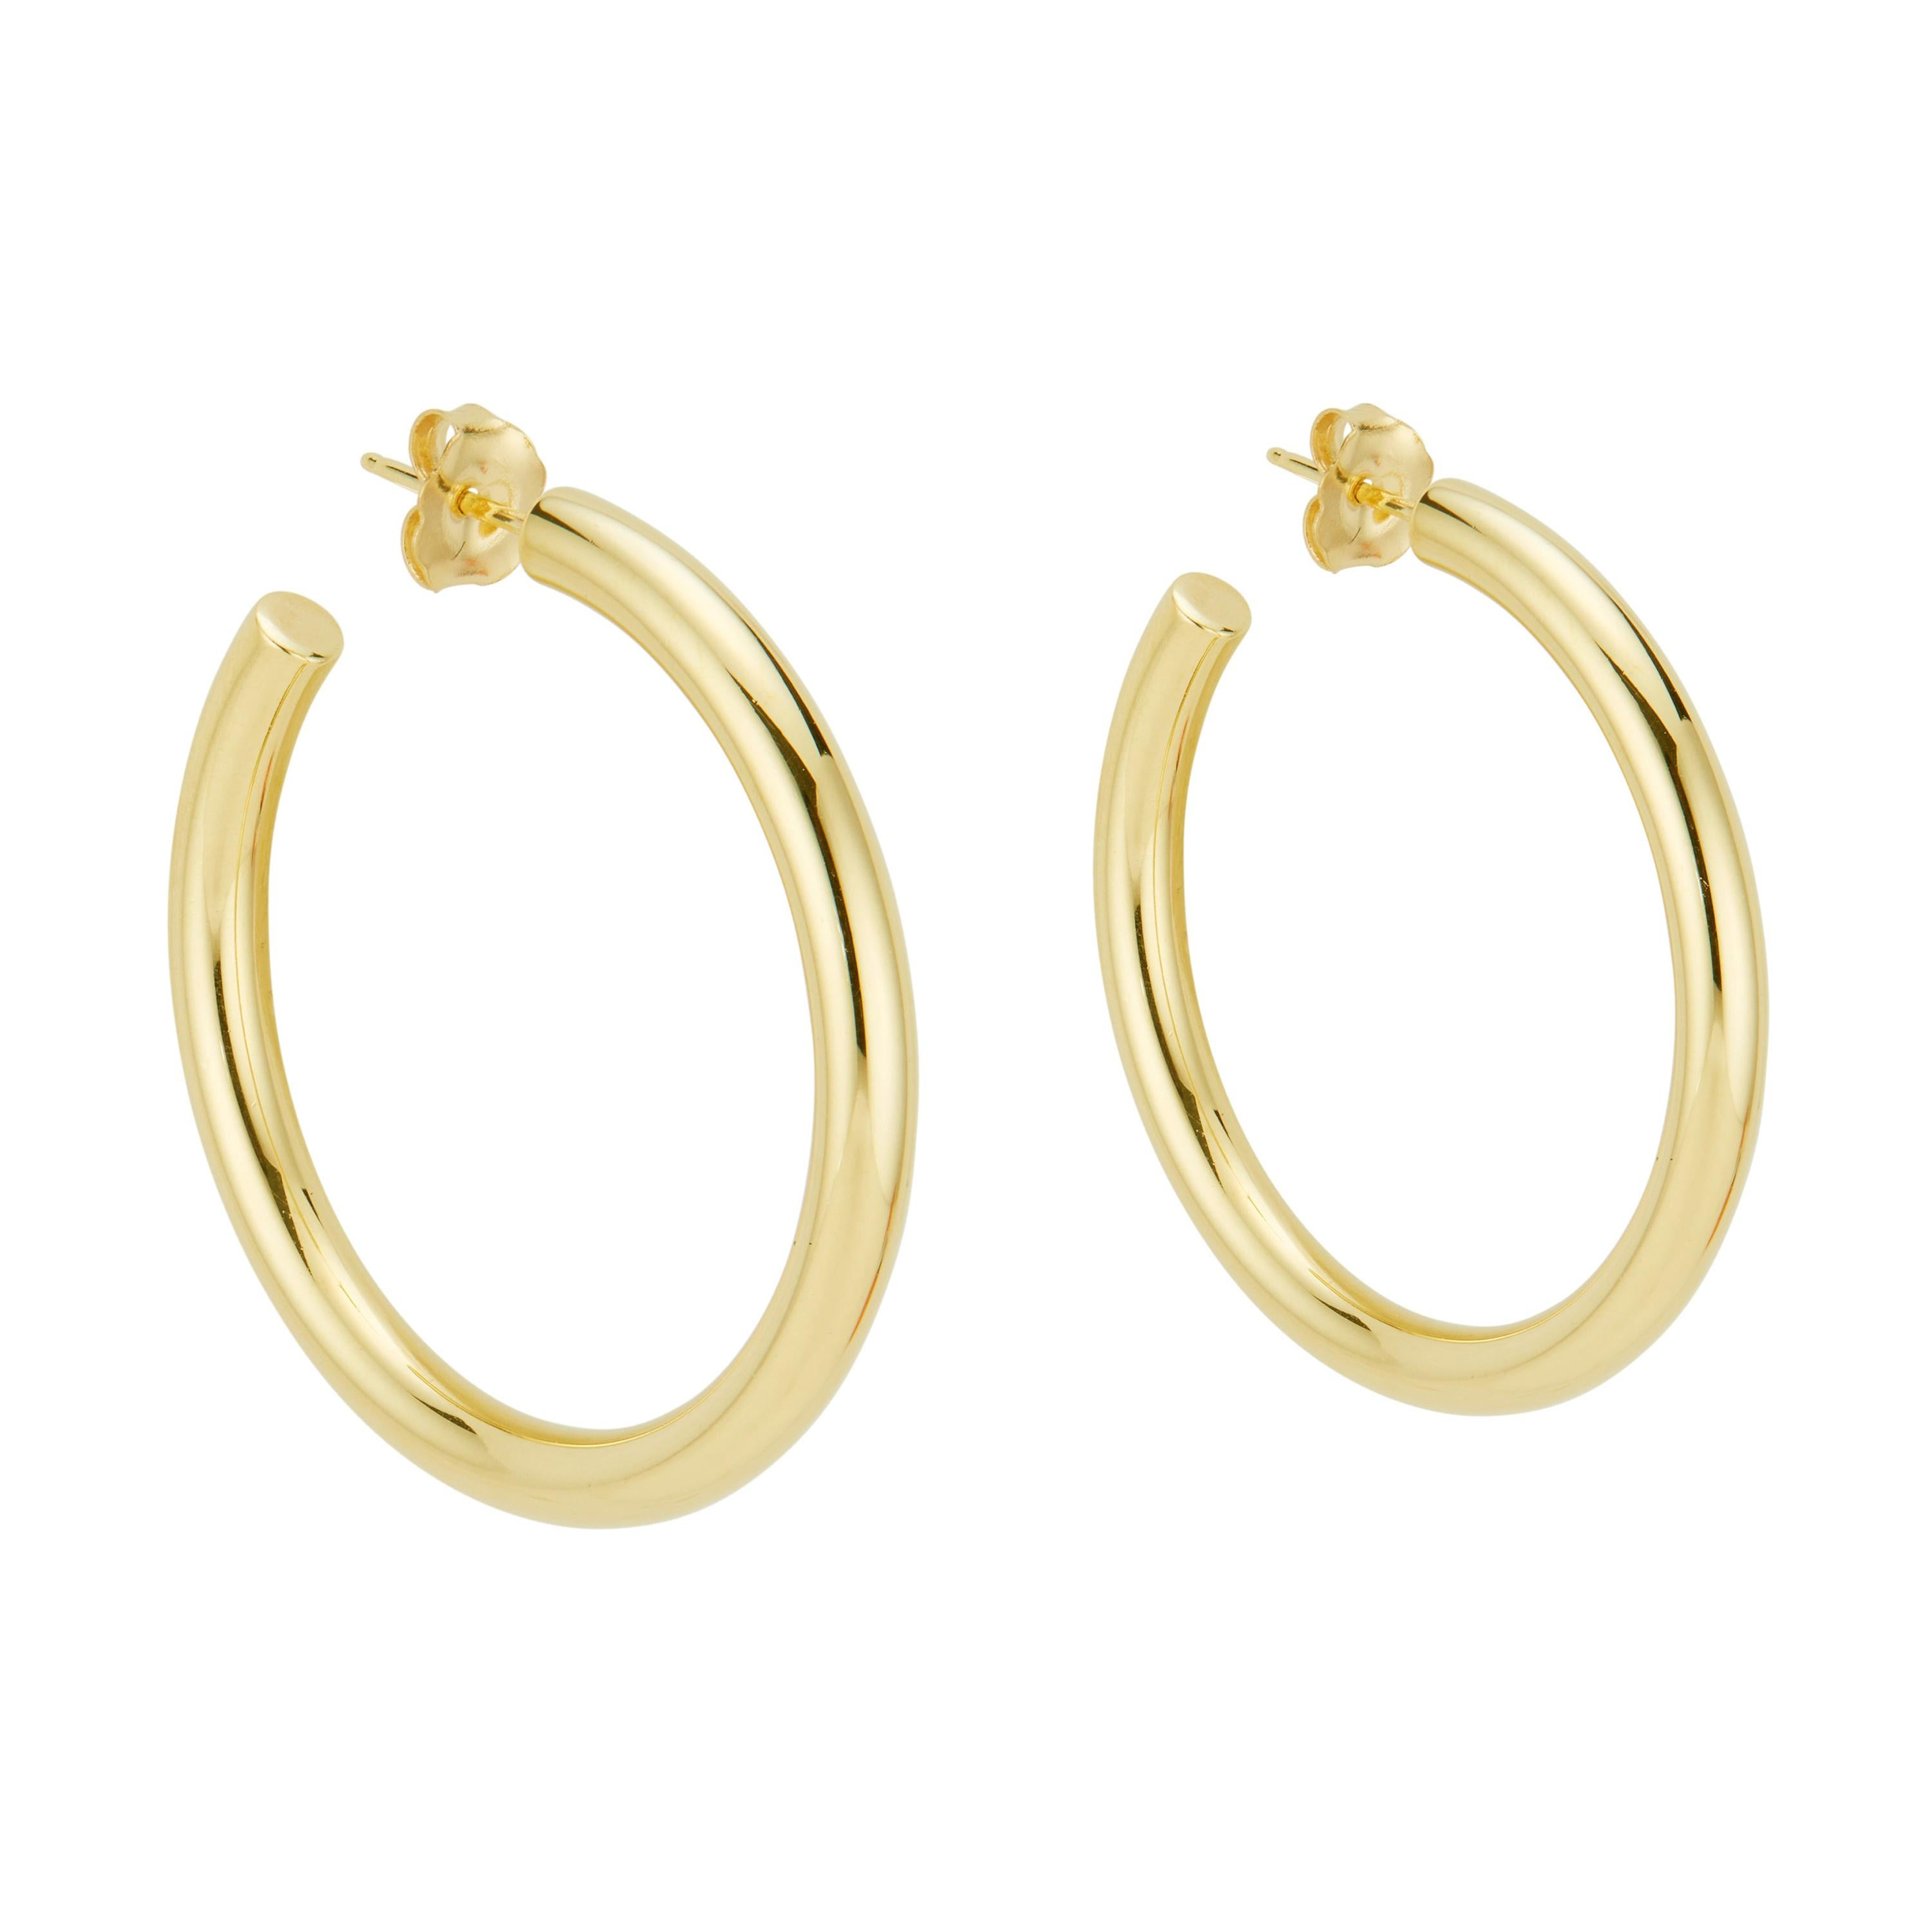 Tiffany & Co Yellow Gold Hoop Earrings